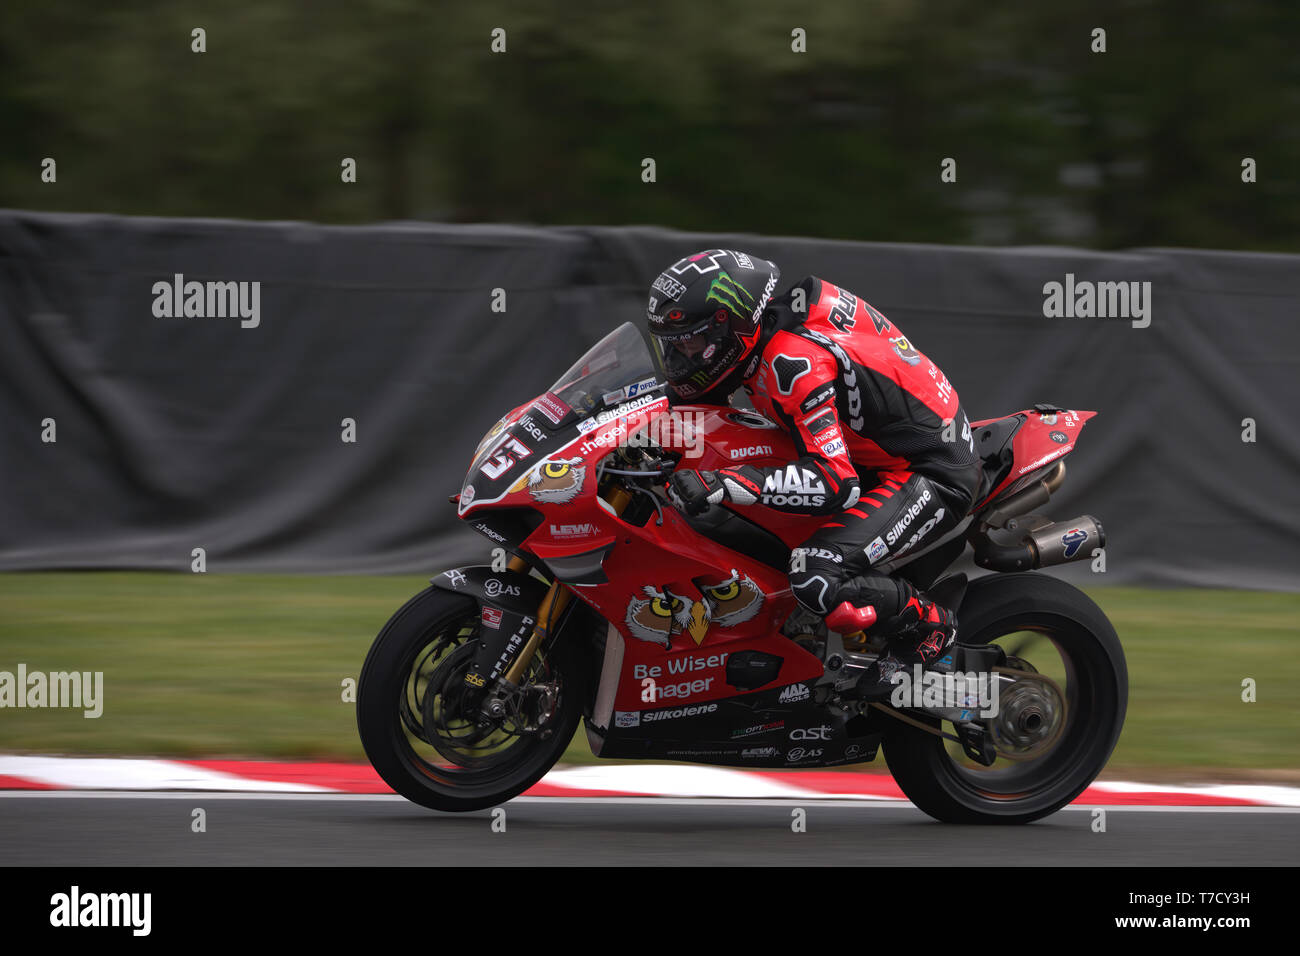 Ex Moto GP rider Scott Redding racing for the first time at Oulton park - Stock Image